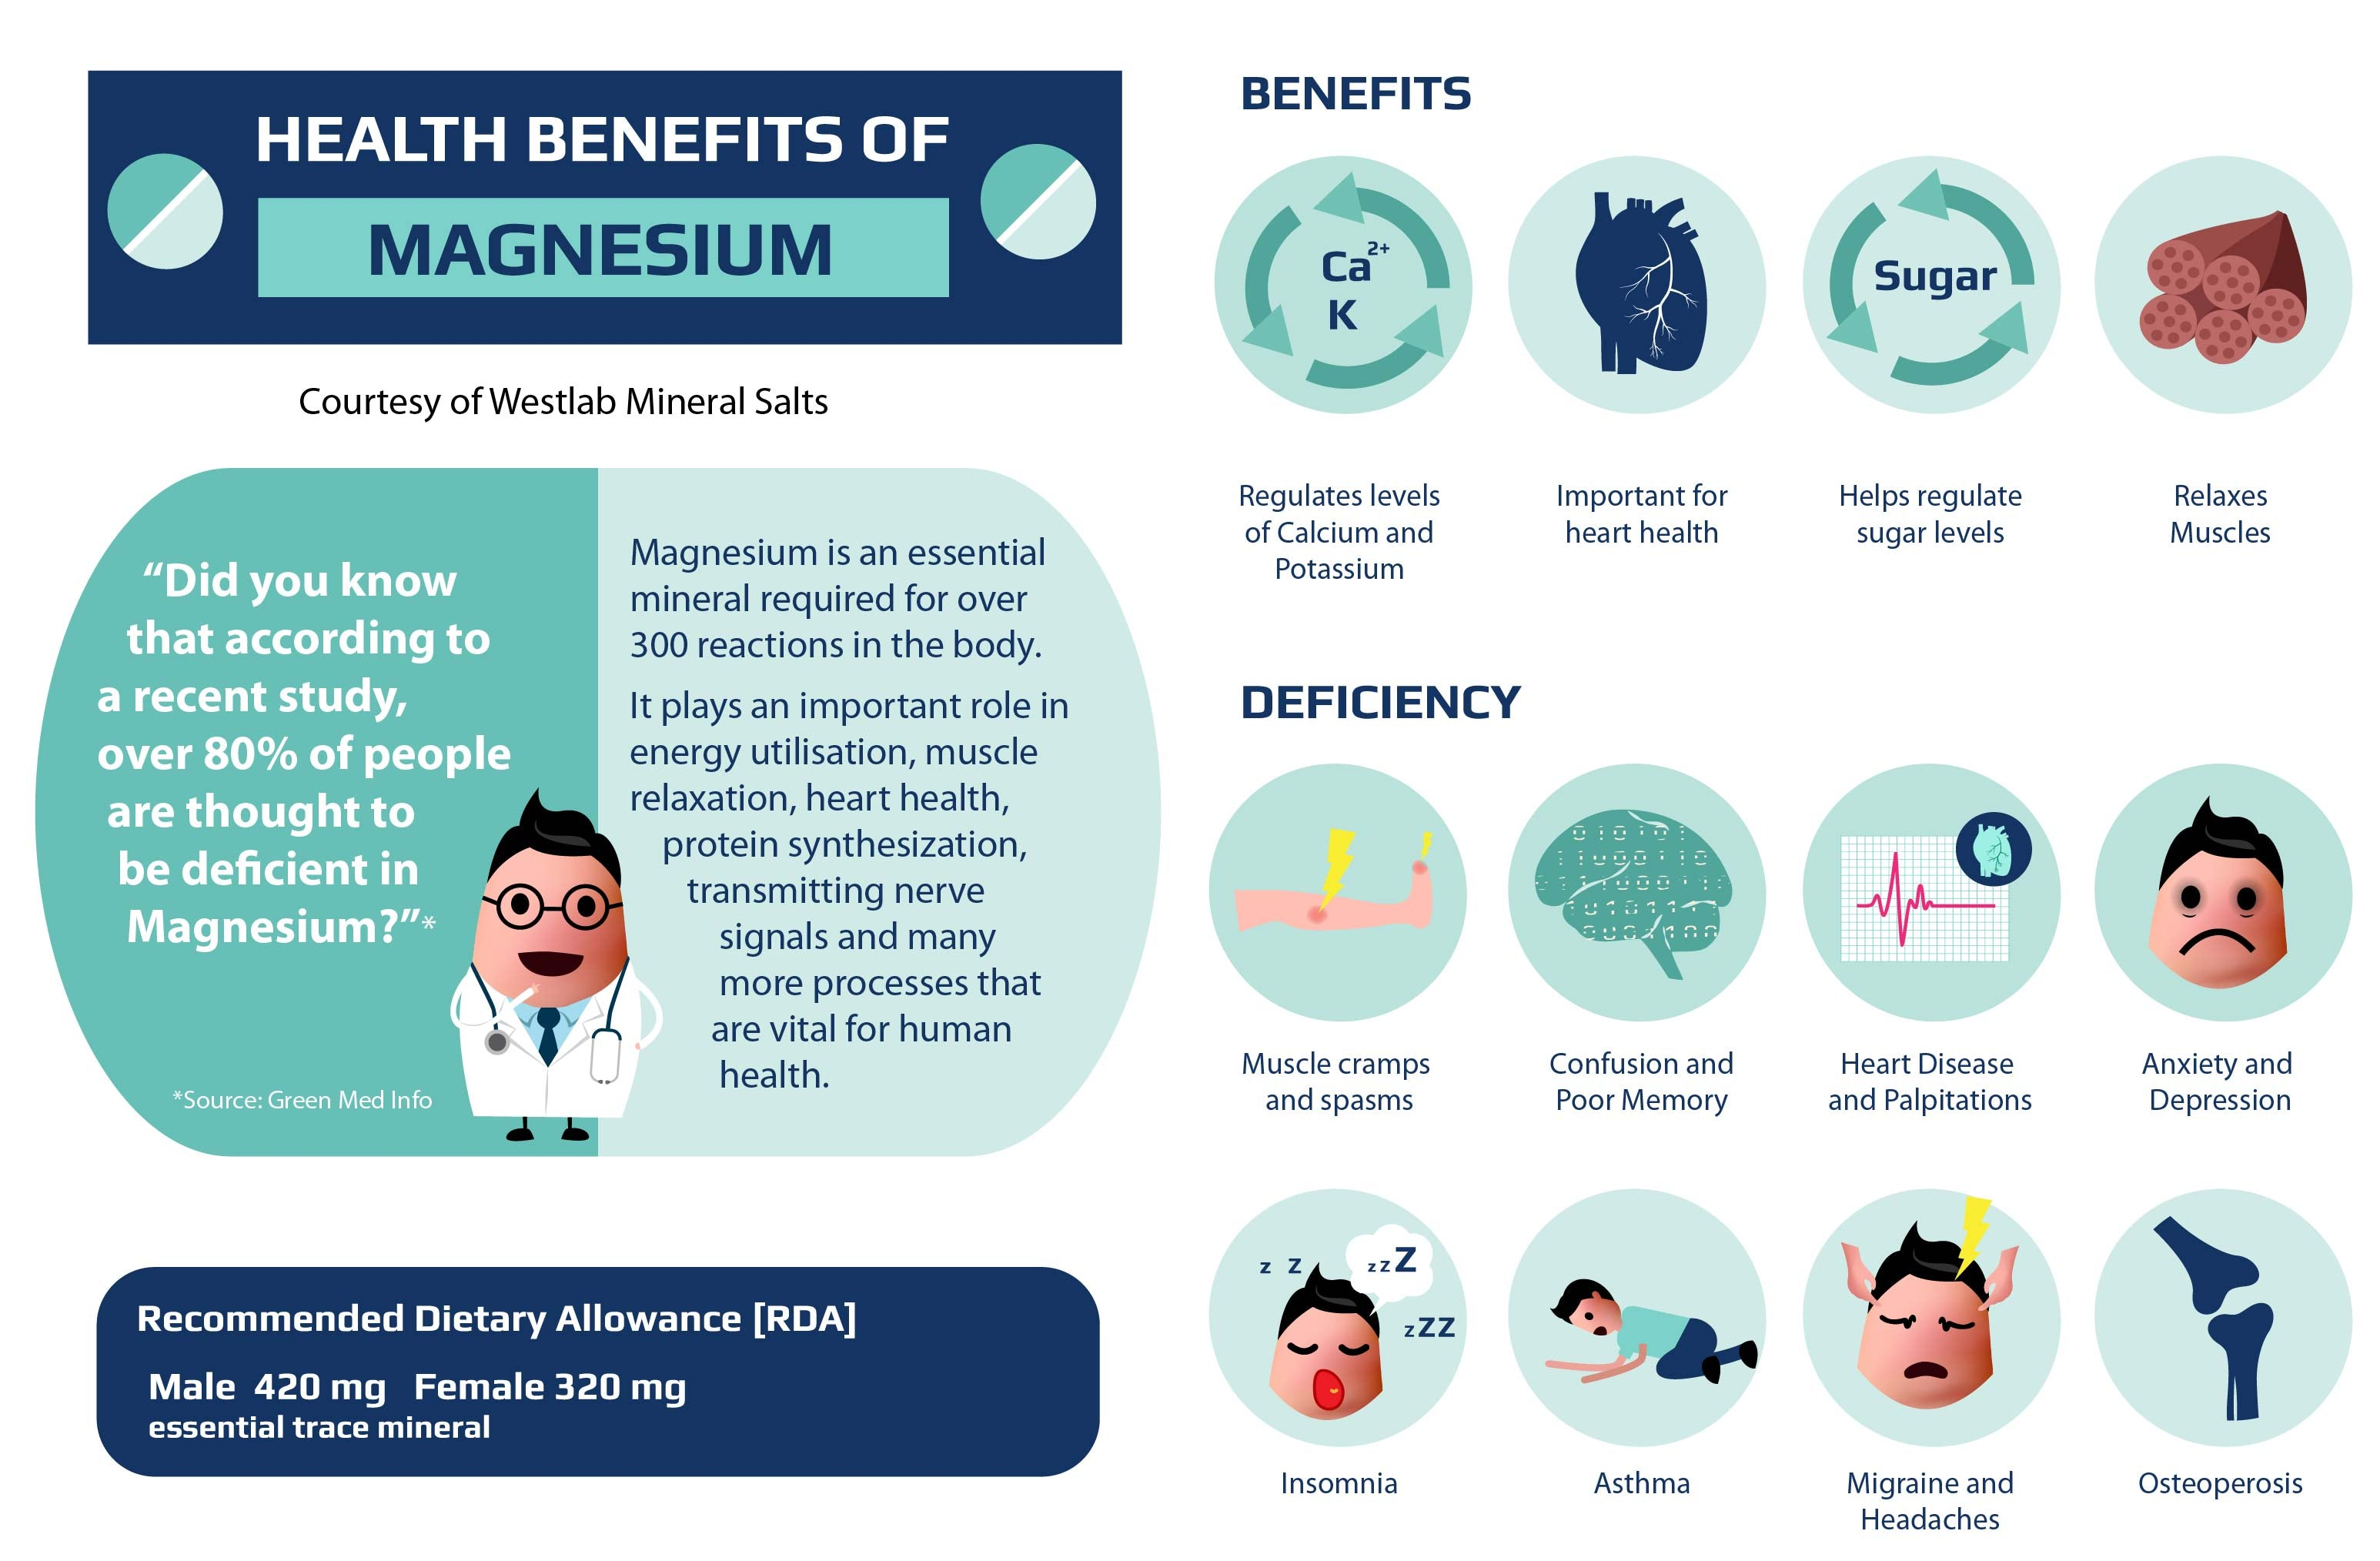 Magnesium health benefits